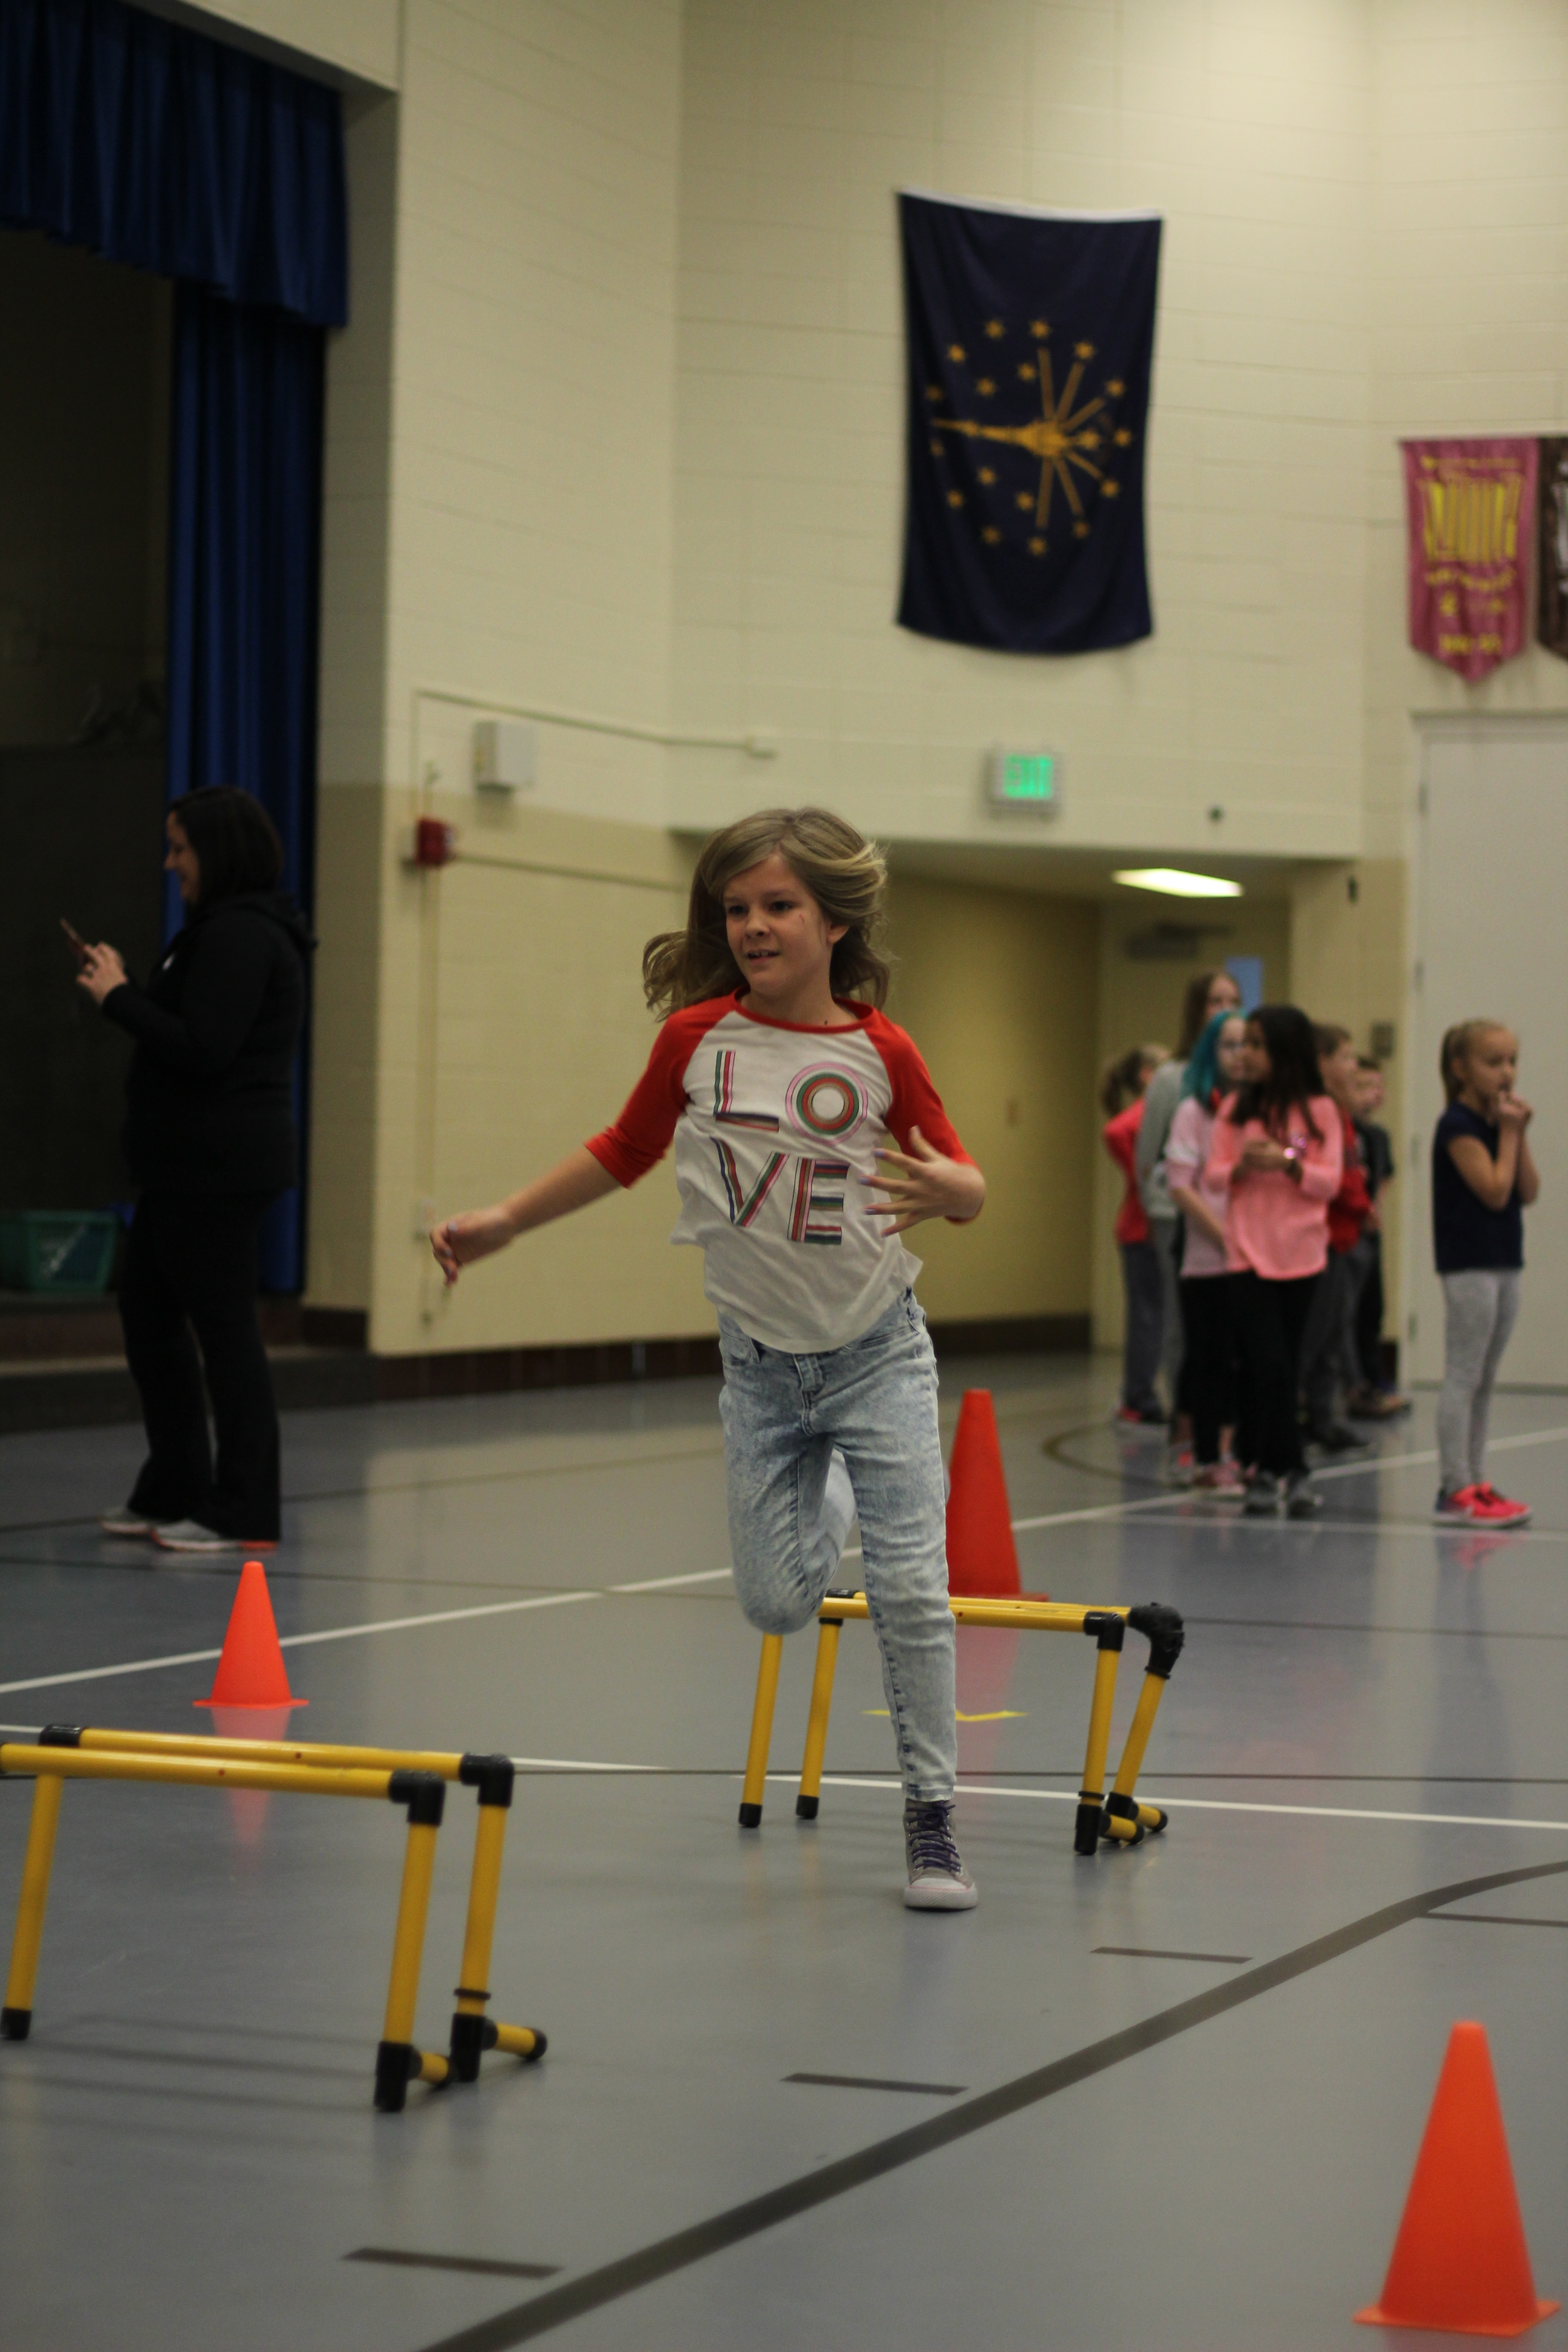 A student participates in an obstacle course